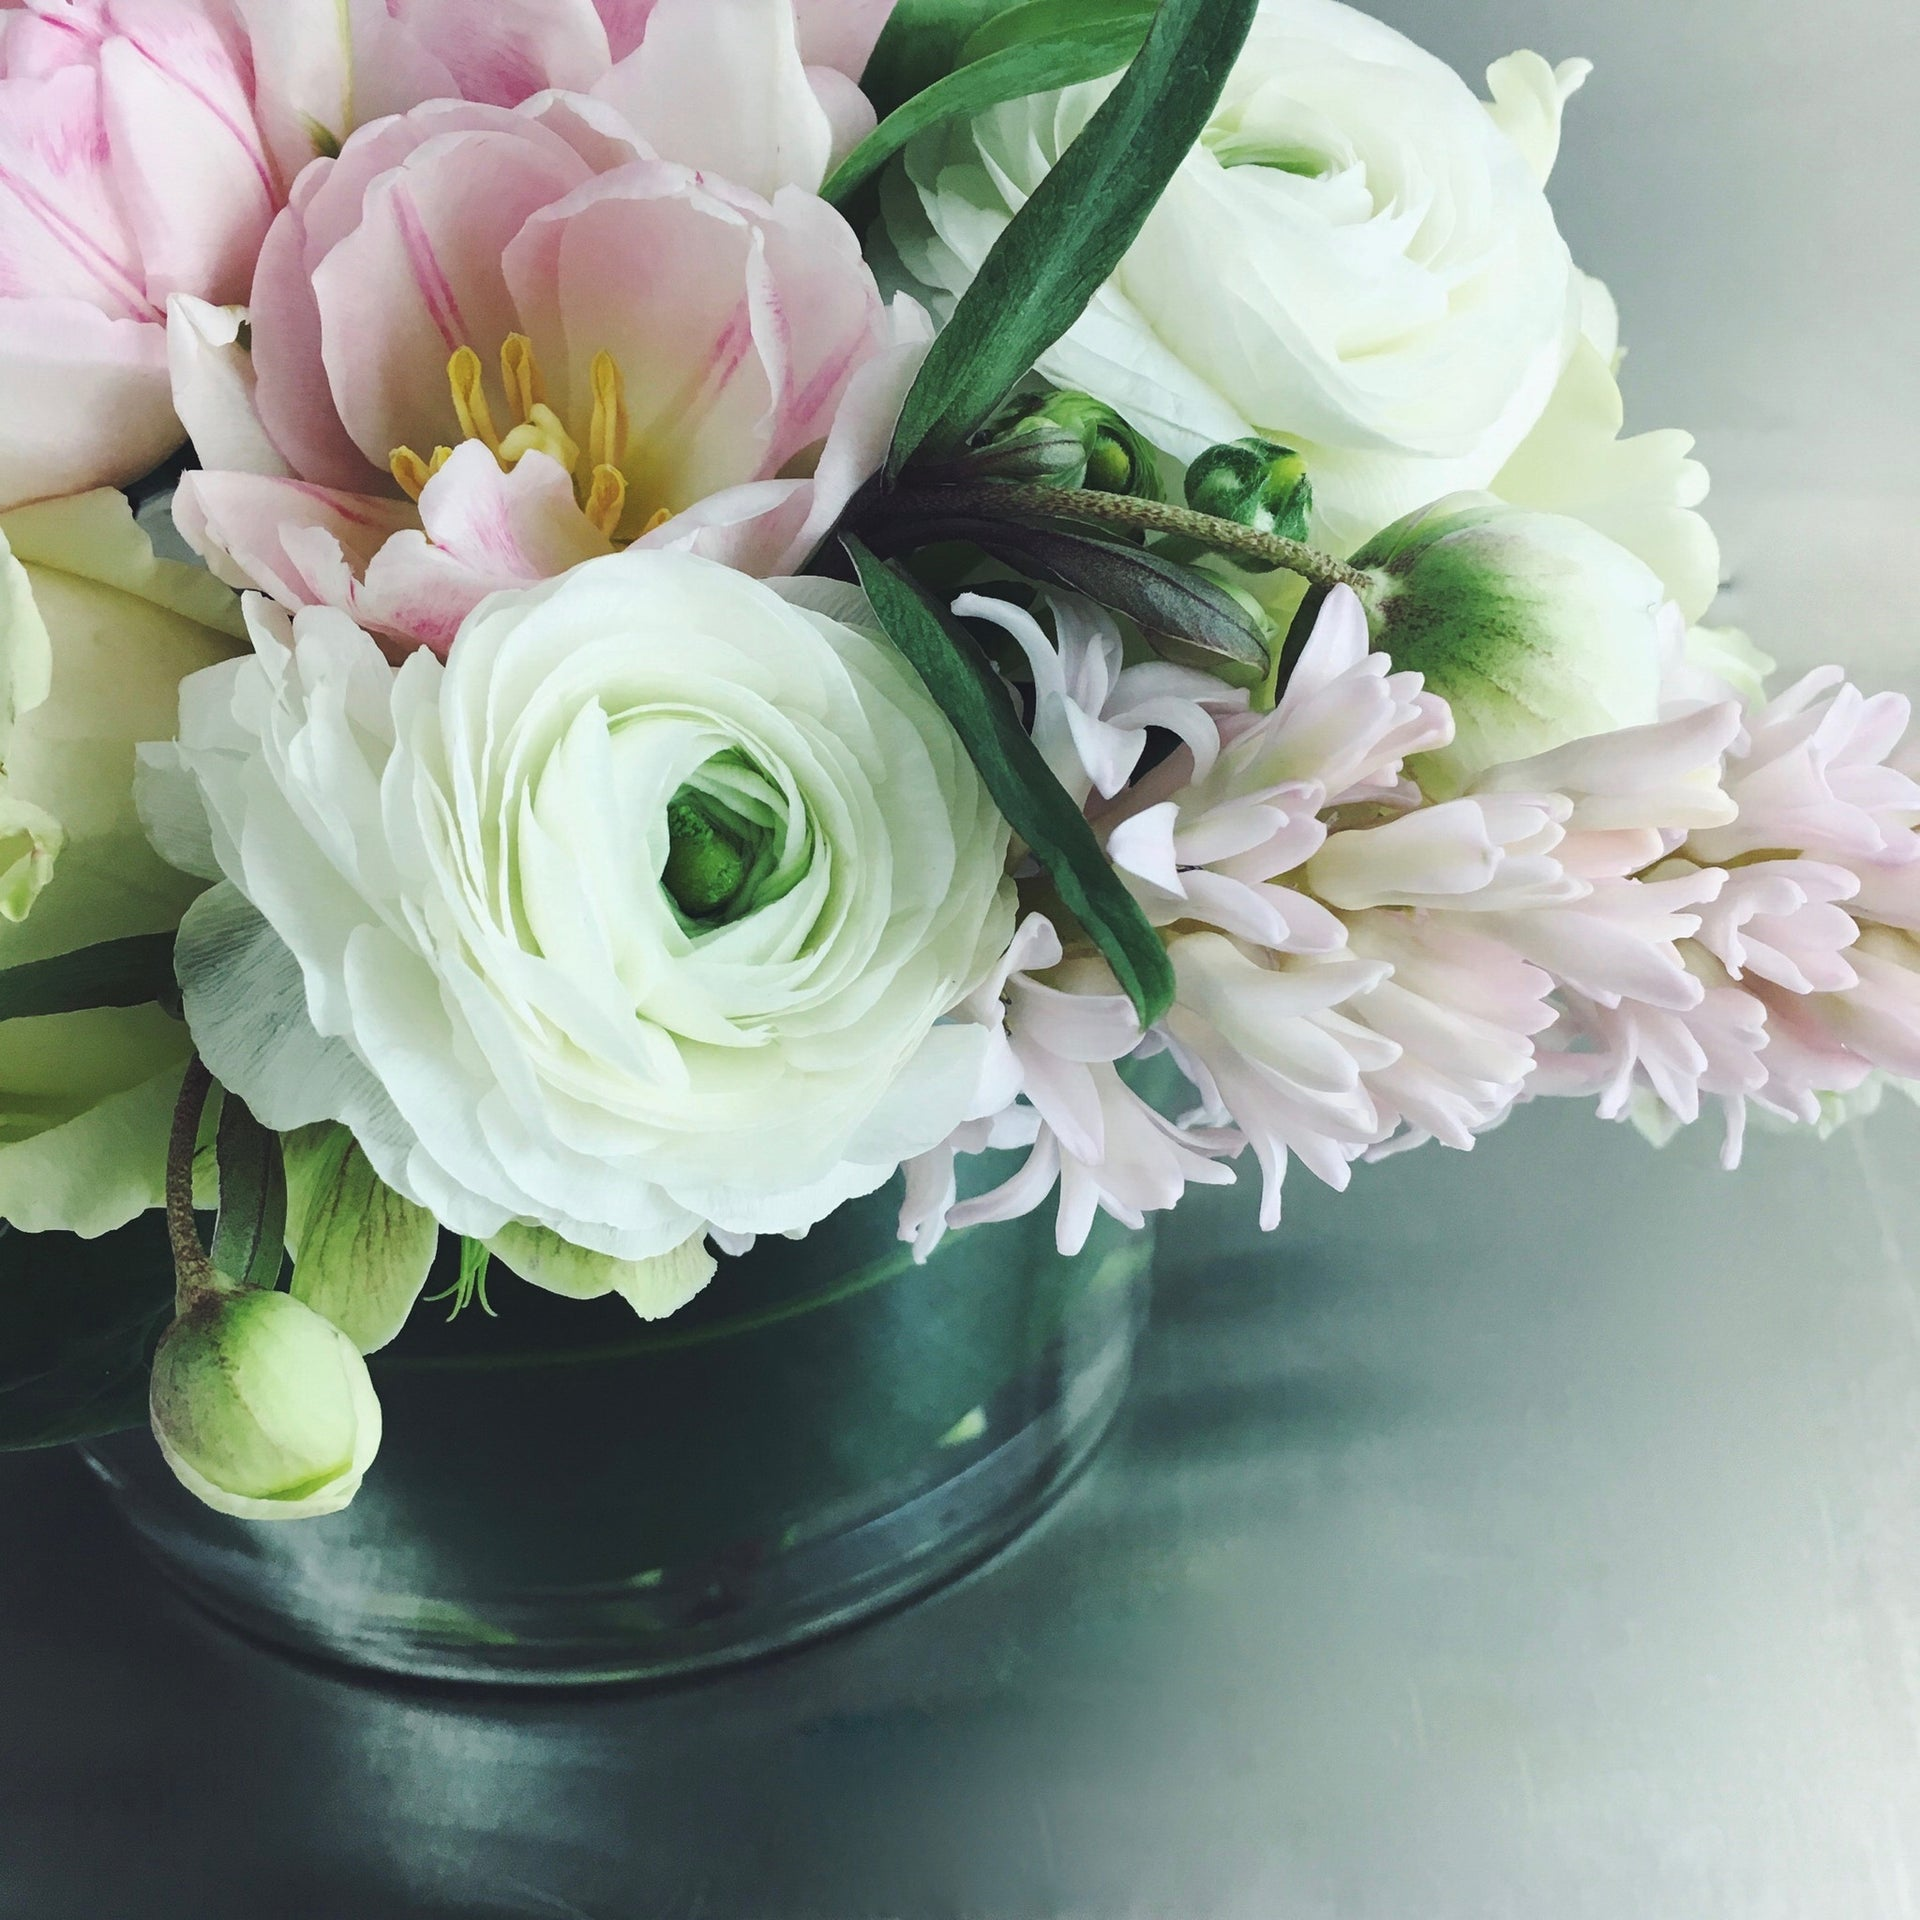 Soft and subdued arrangement in white and pale pink using hyacinth, tulips, and ranunculus.